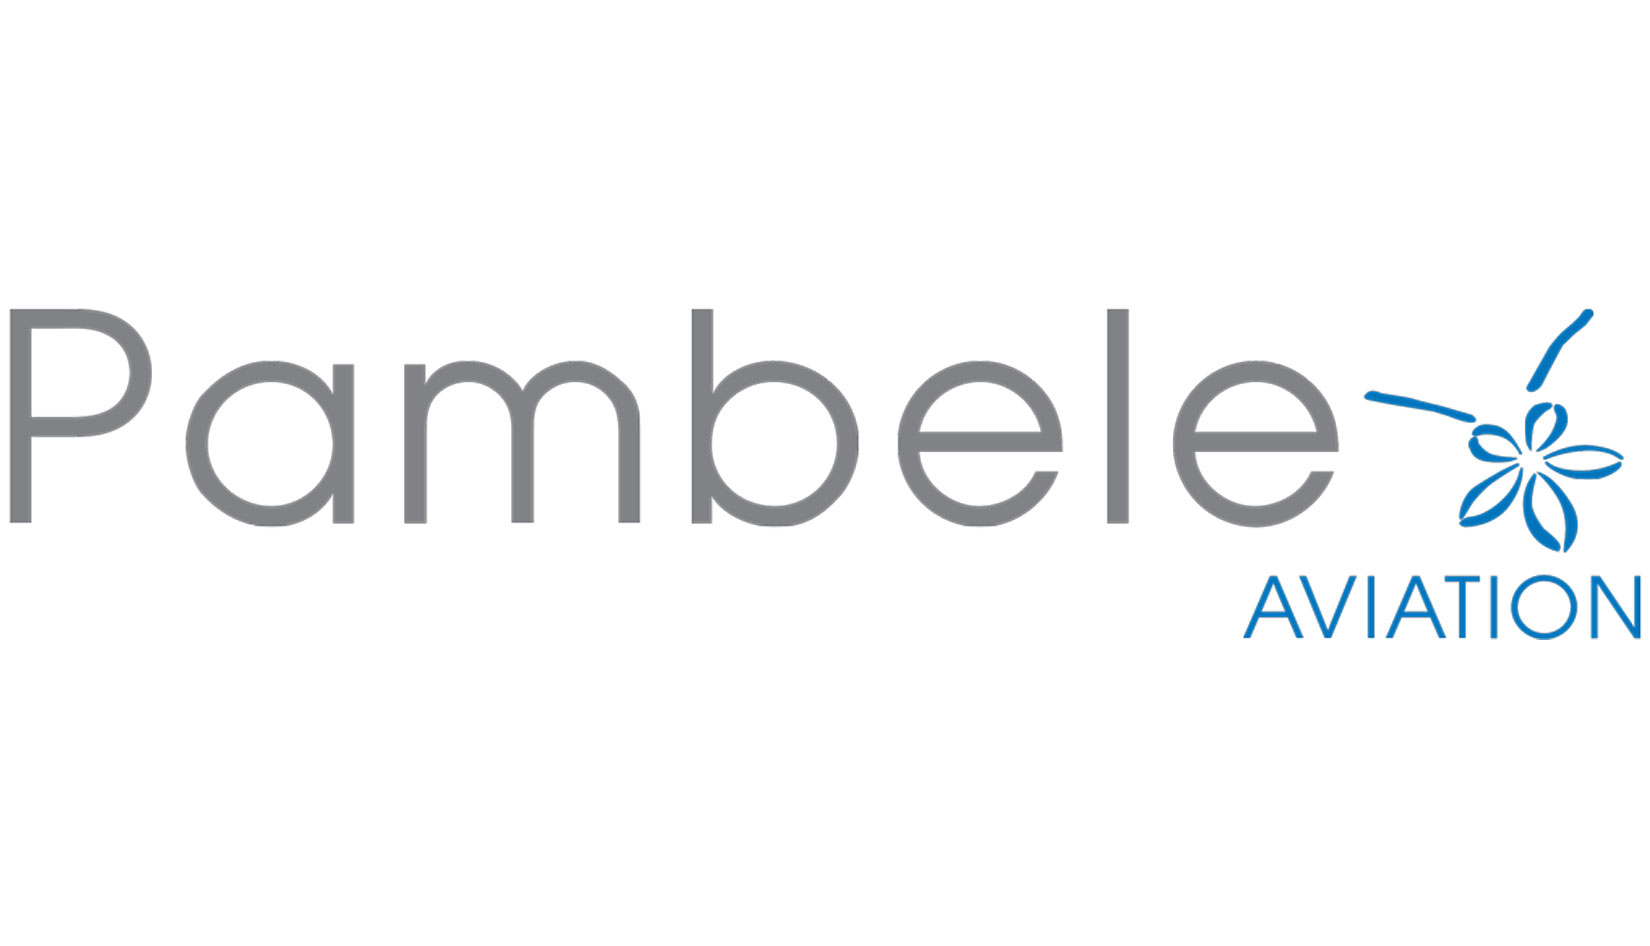 Pambele Aviation Services